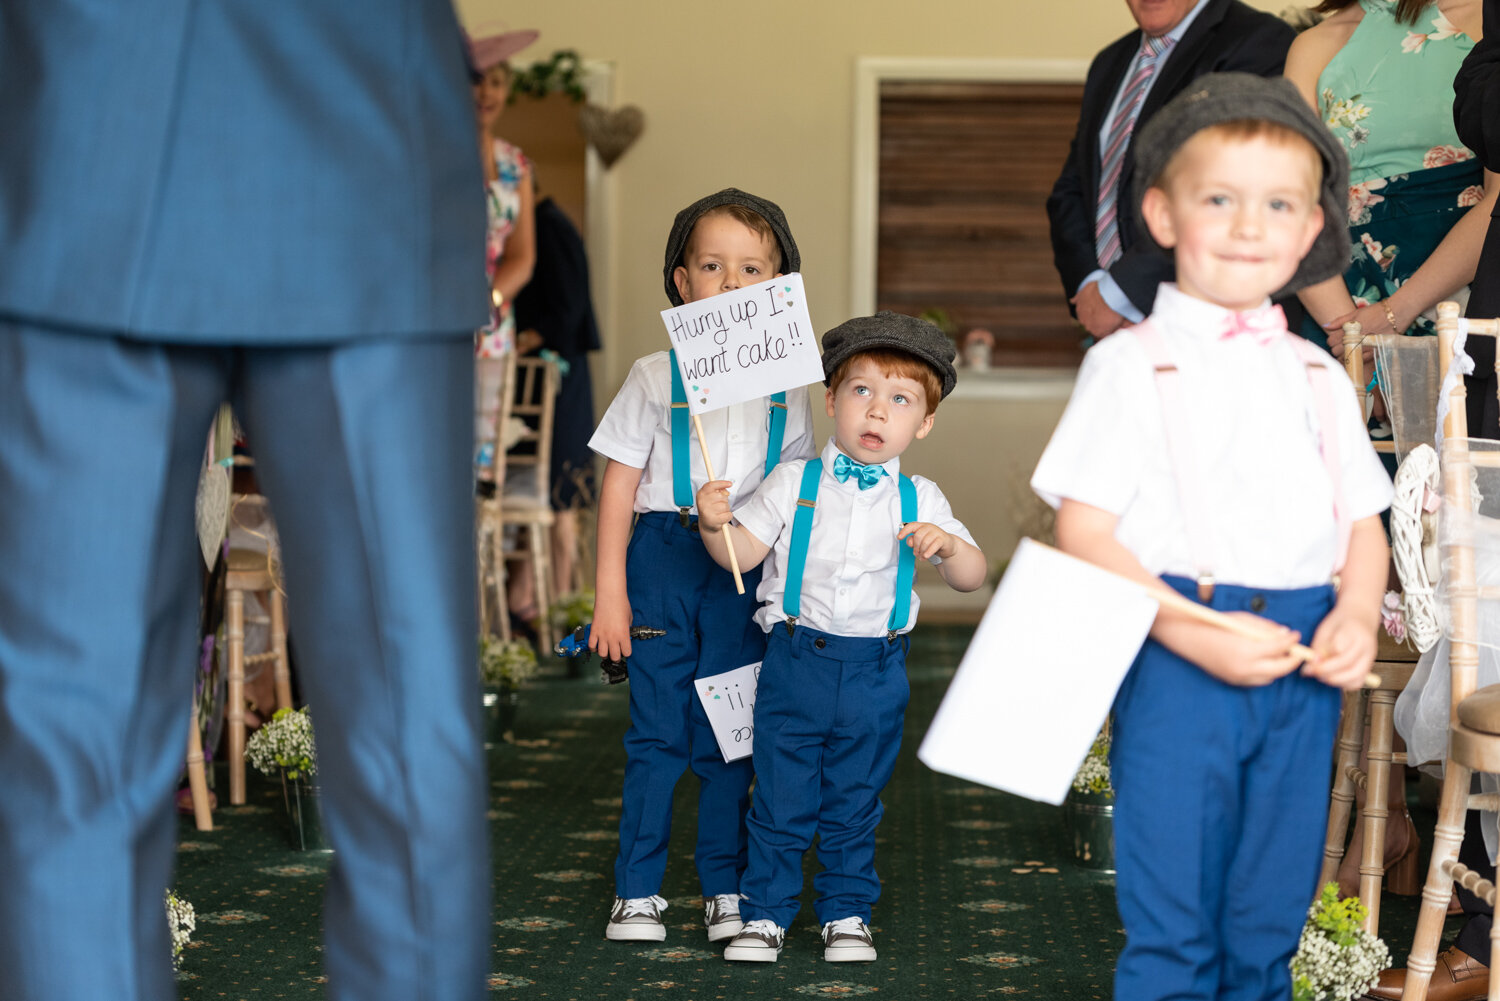 Paige boys walking down the aisle with signs